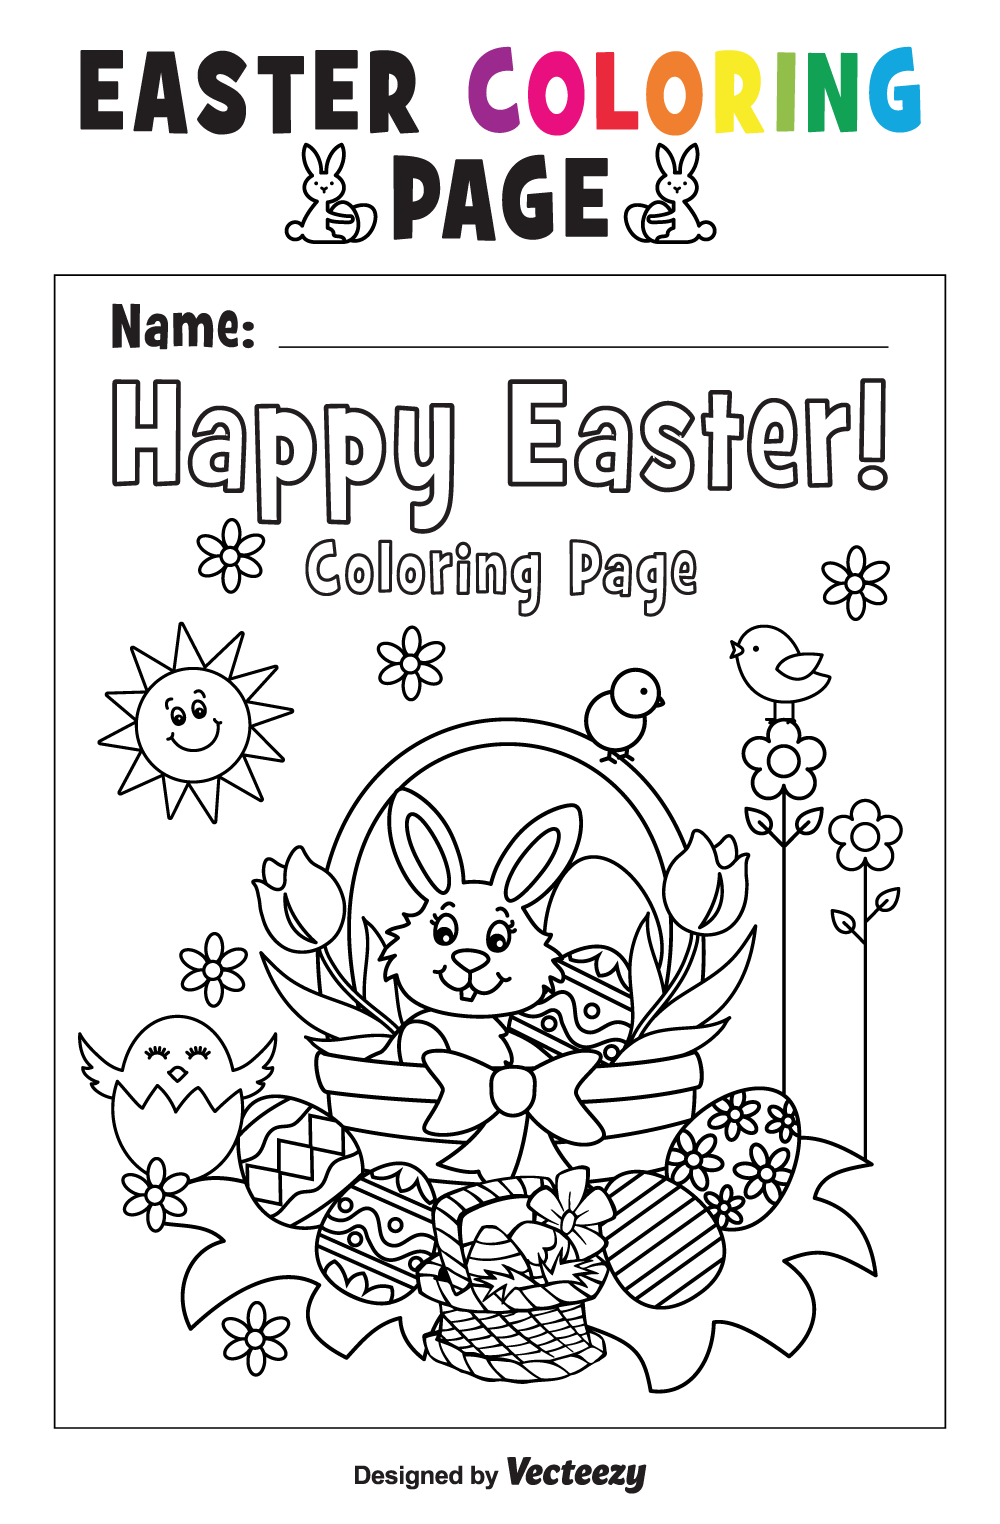 Free easter coloring page printable download